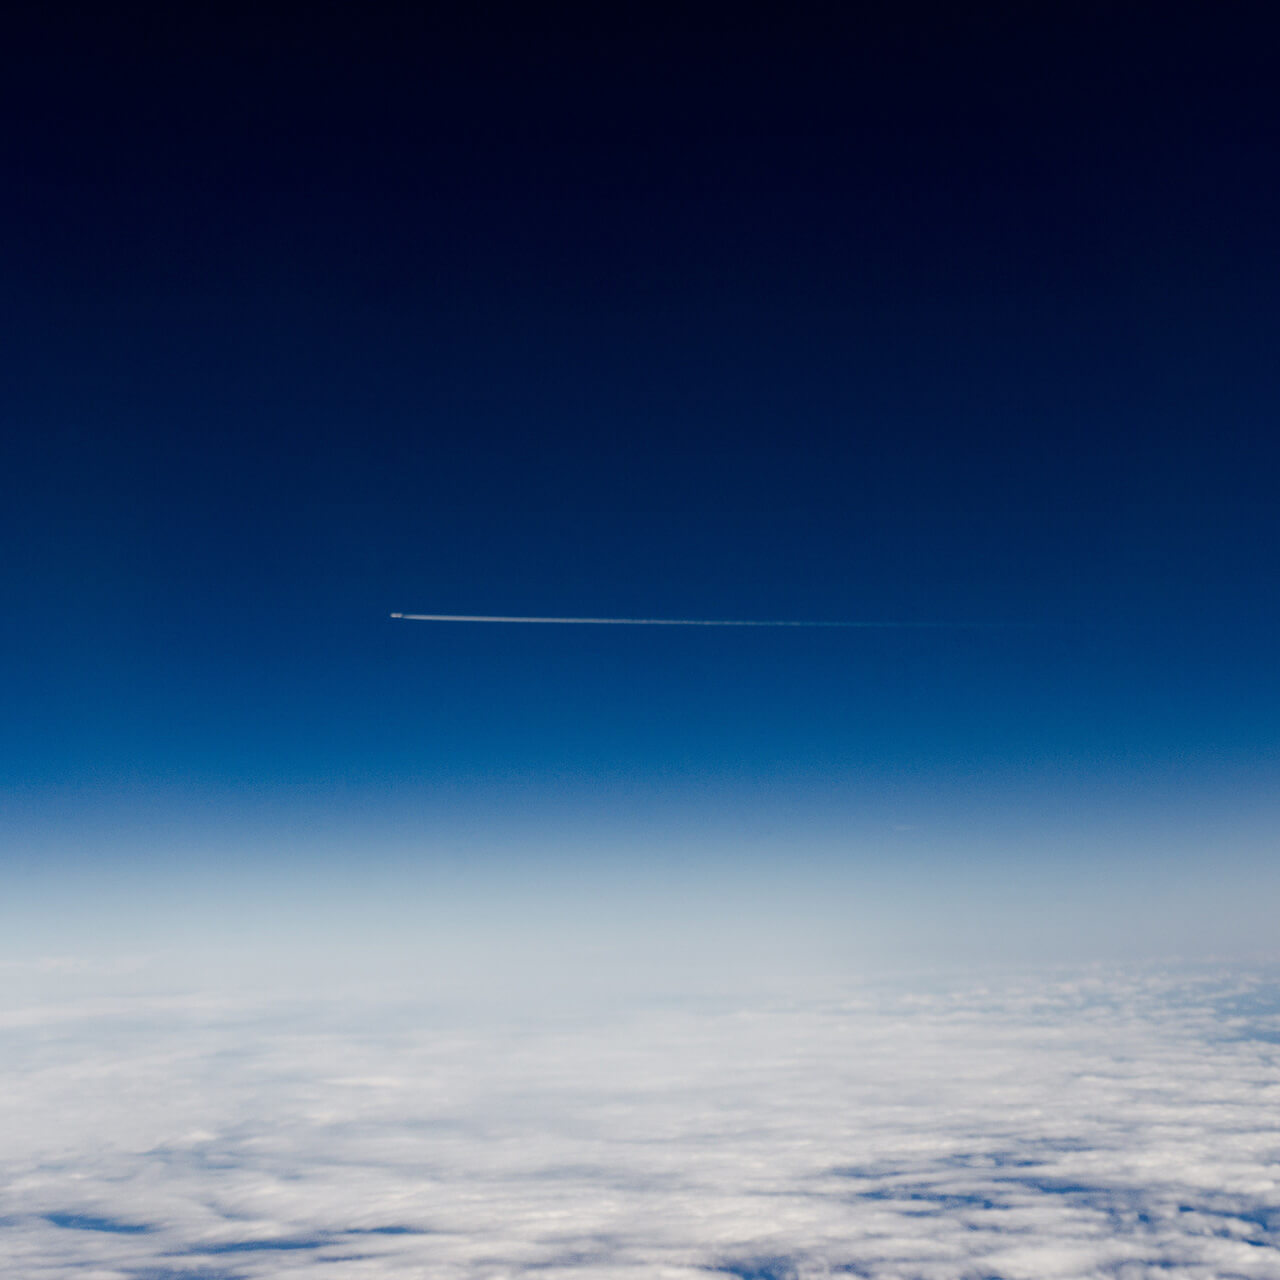 space shuttle flying in the sky